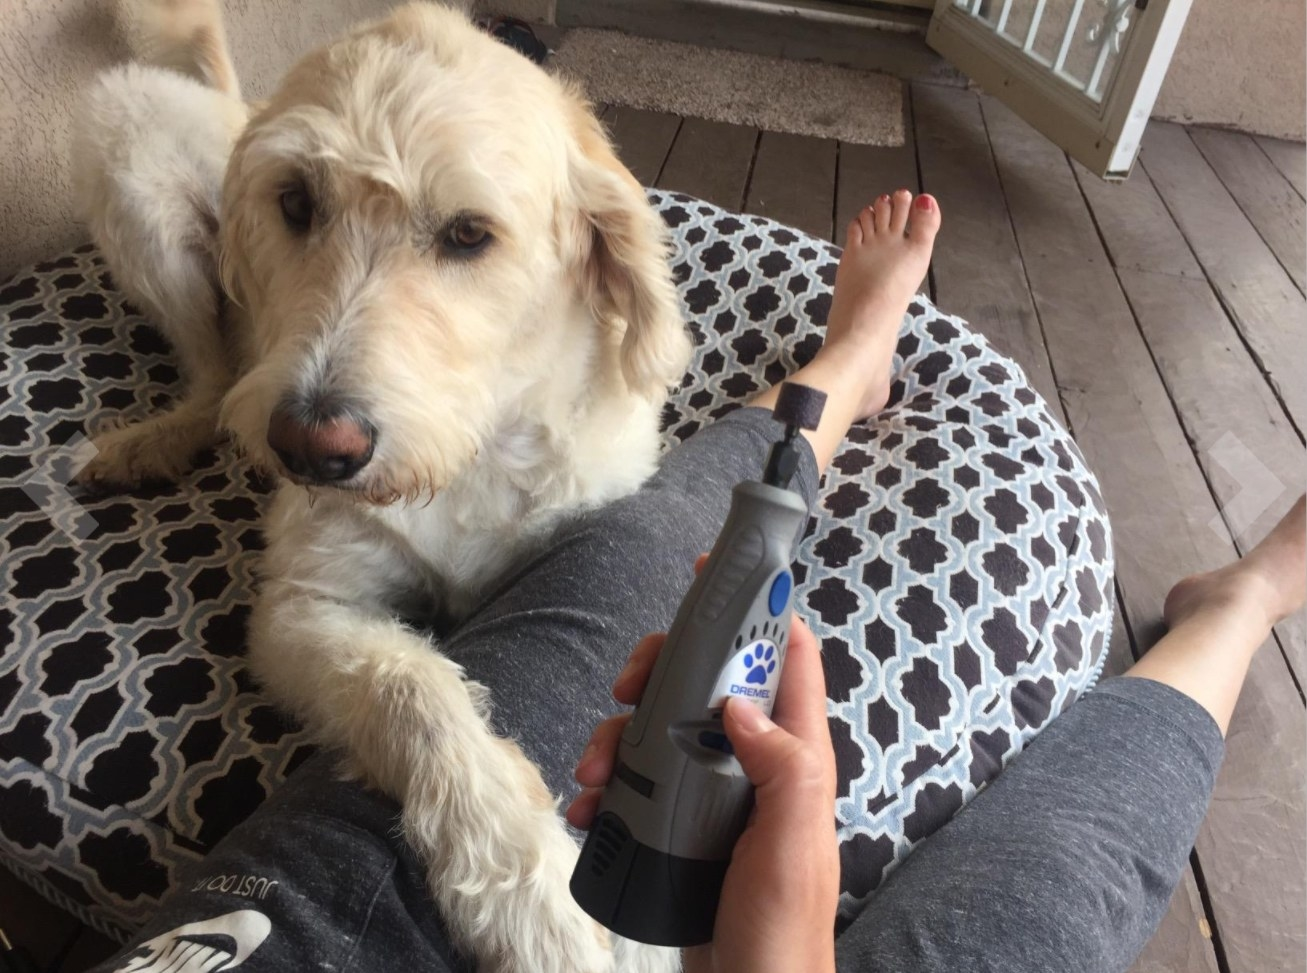 A labradoodle waiting to have its nails trimmed by the tool